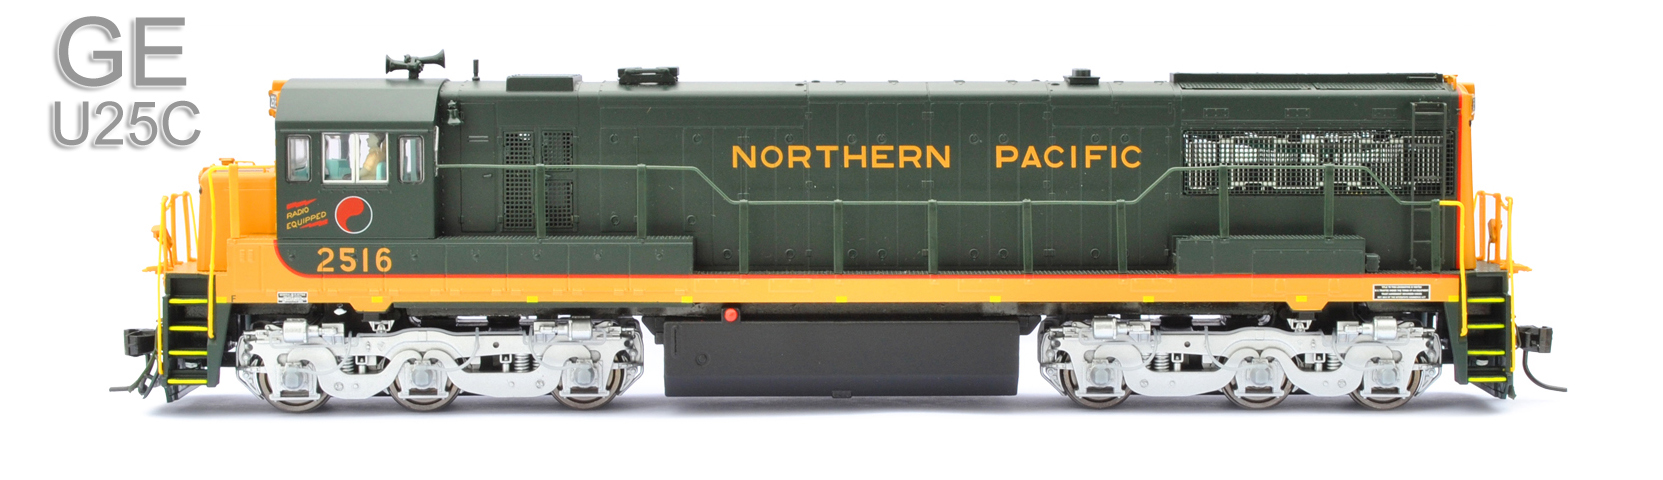 Northern Pacific - Road Numbers: 2516, 2517, 2518